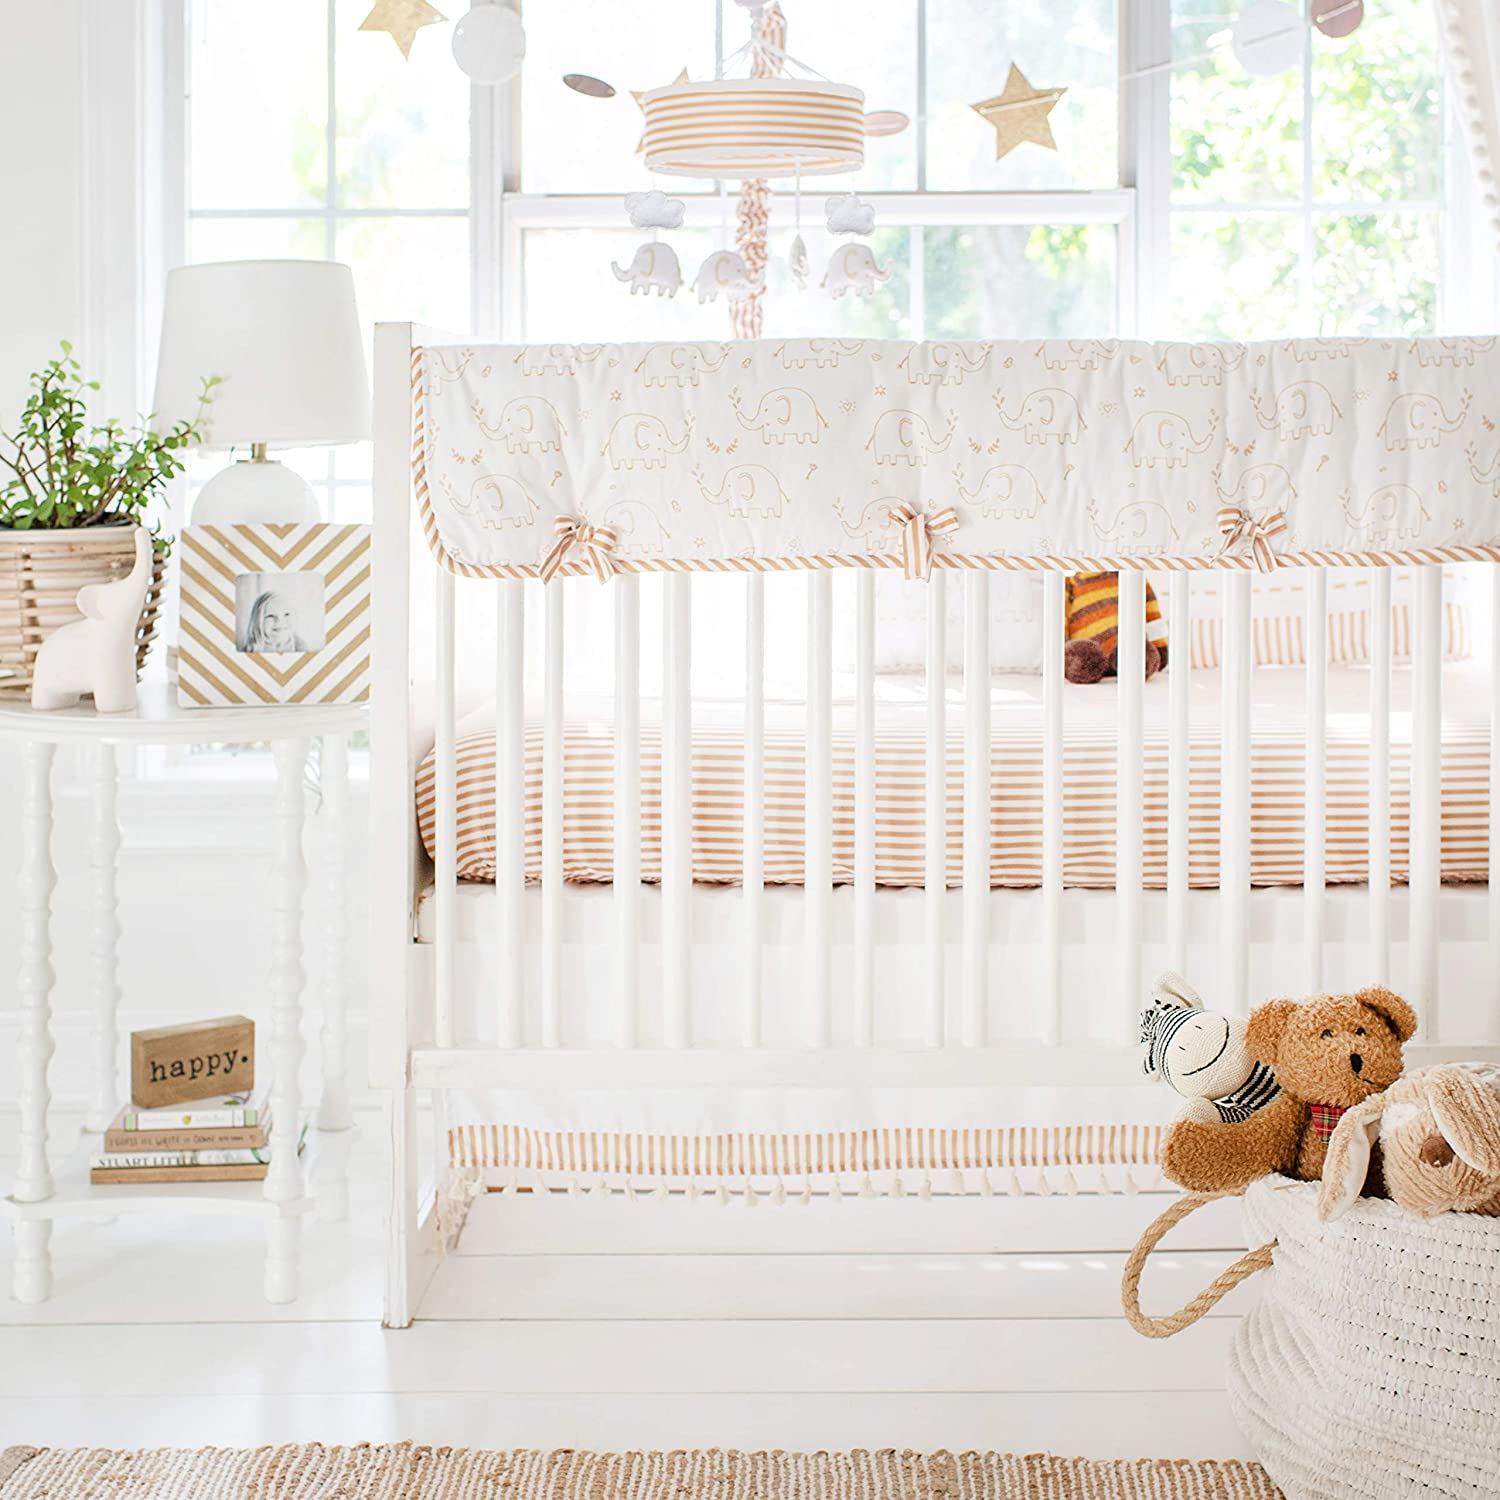 My Baby Sam Heart of Gold Elephant 9Piece Crib Bedding Set, CRIB9188